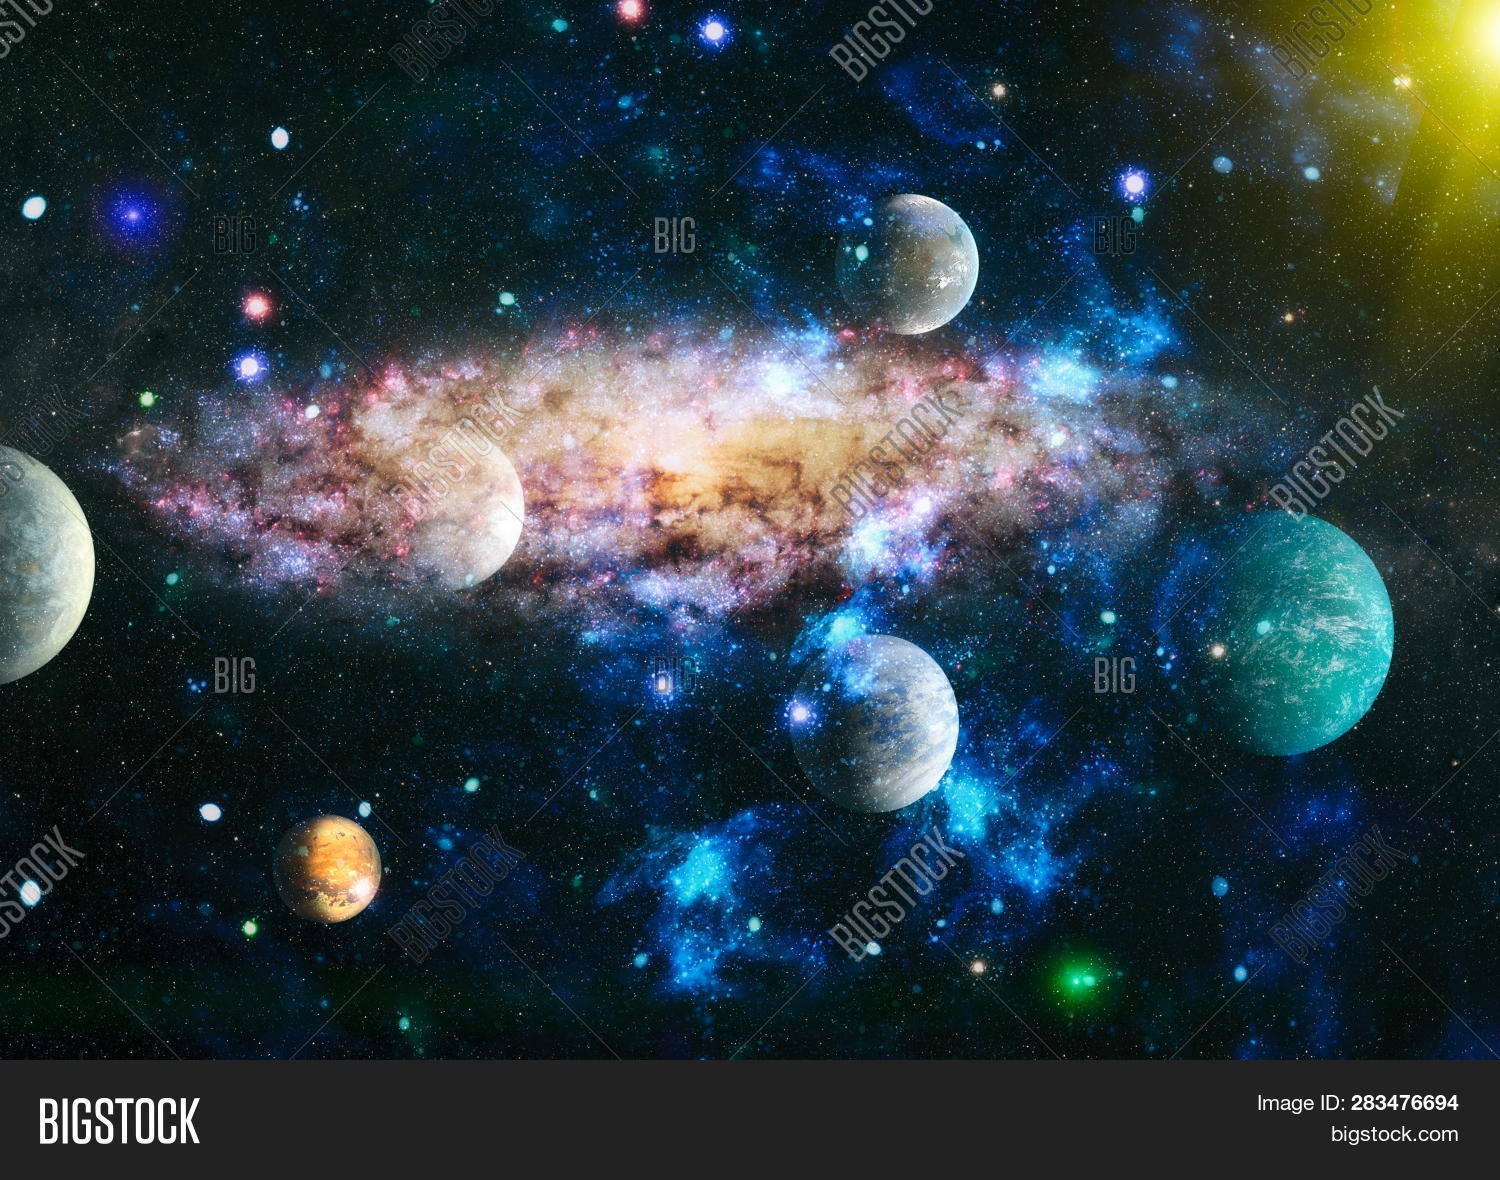 Chaotic Space Image Photo Free Trial Bigstock